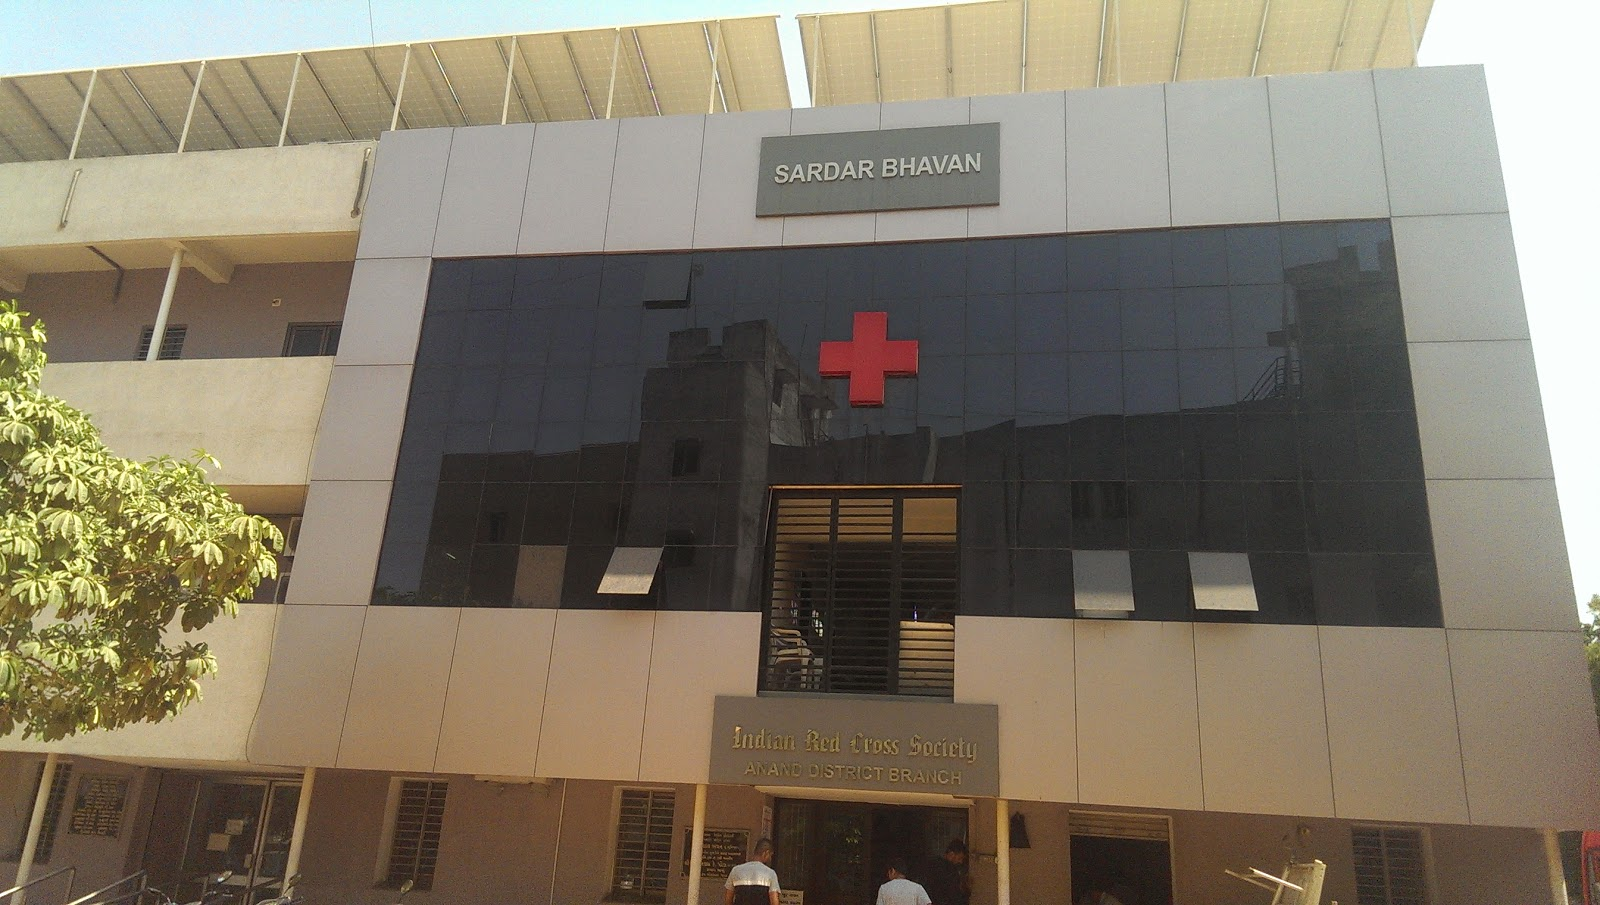 blood bank Indian Red Cross Society near Anand Gujarat